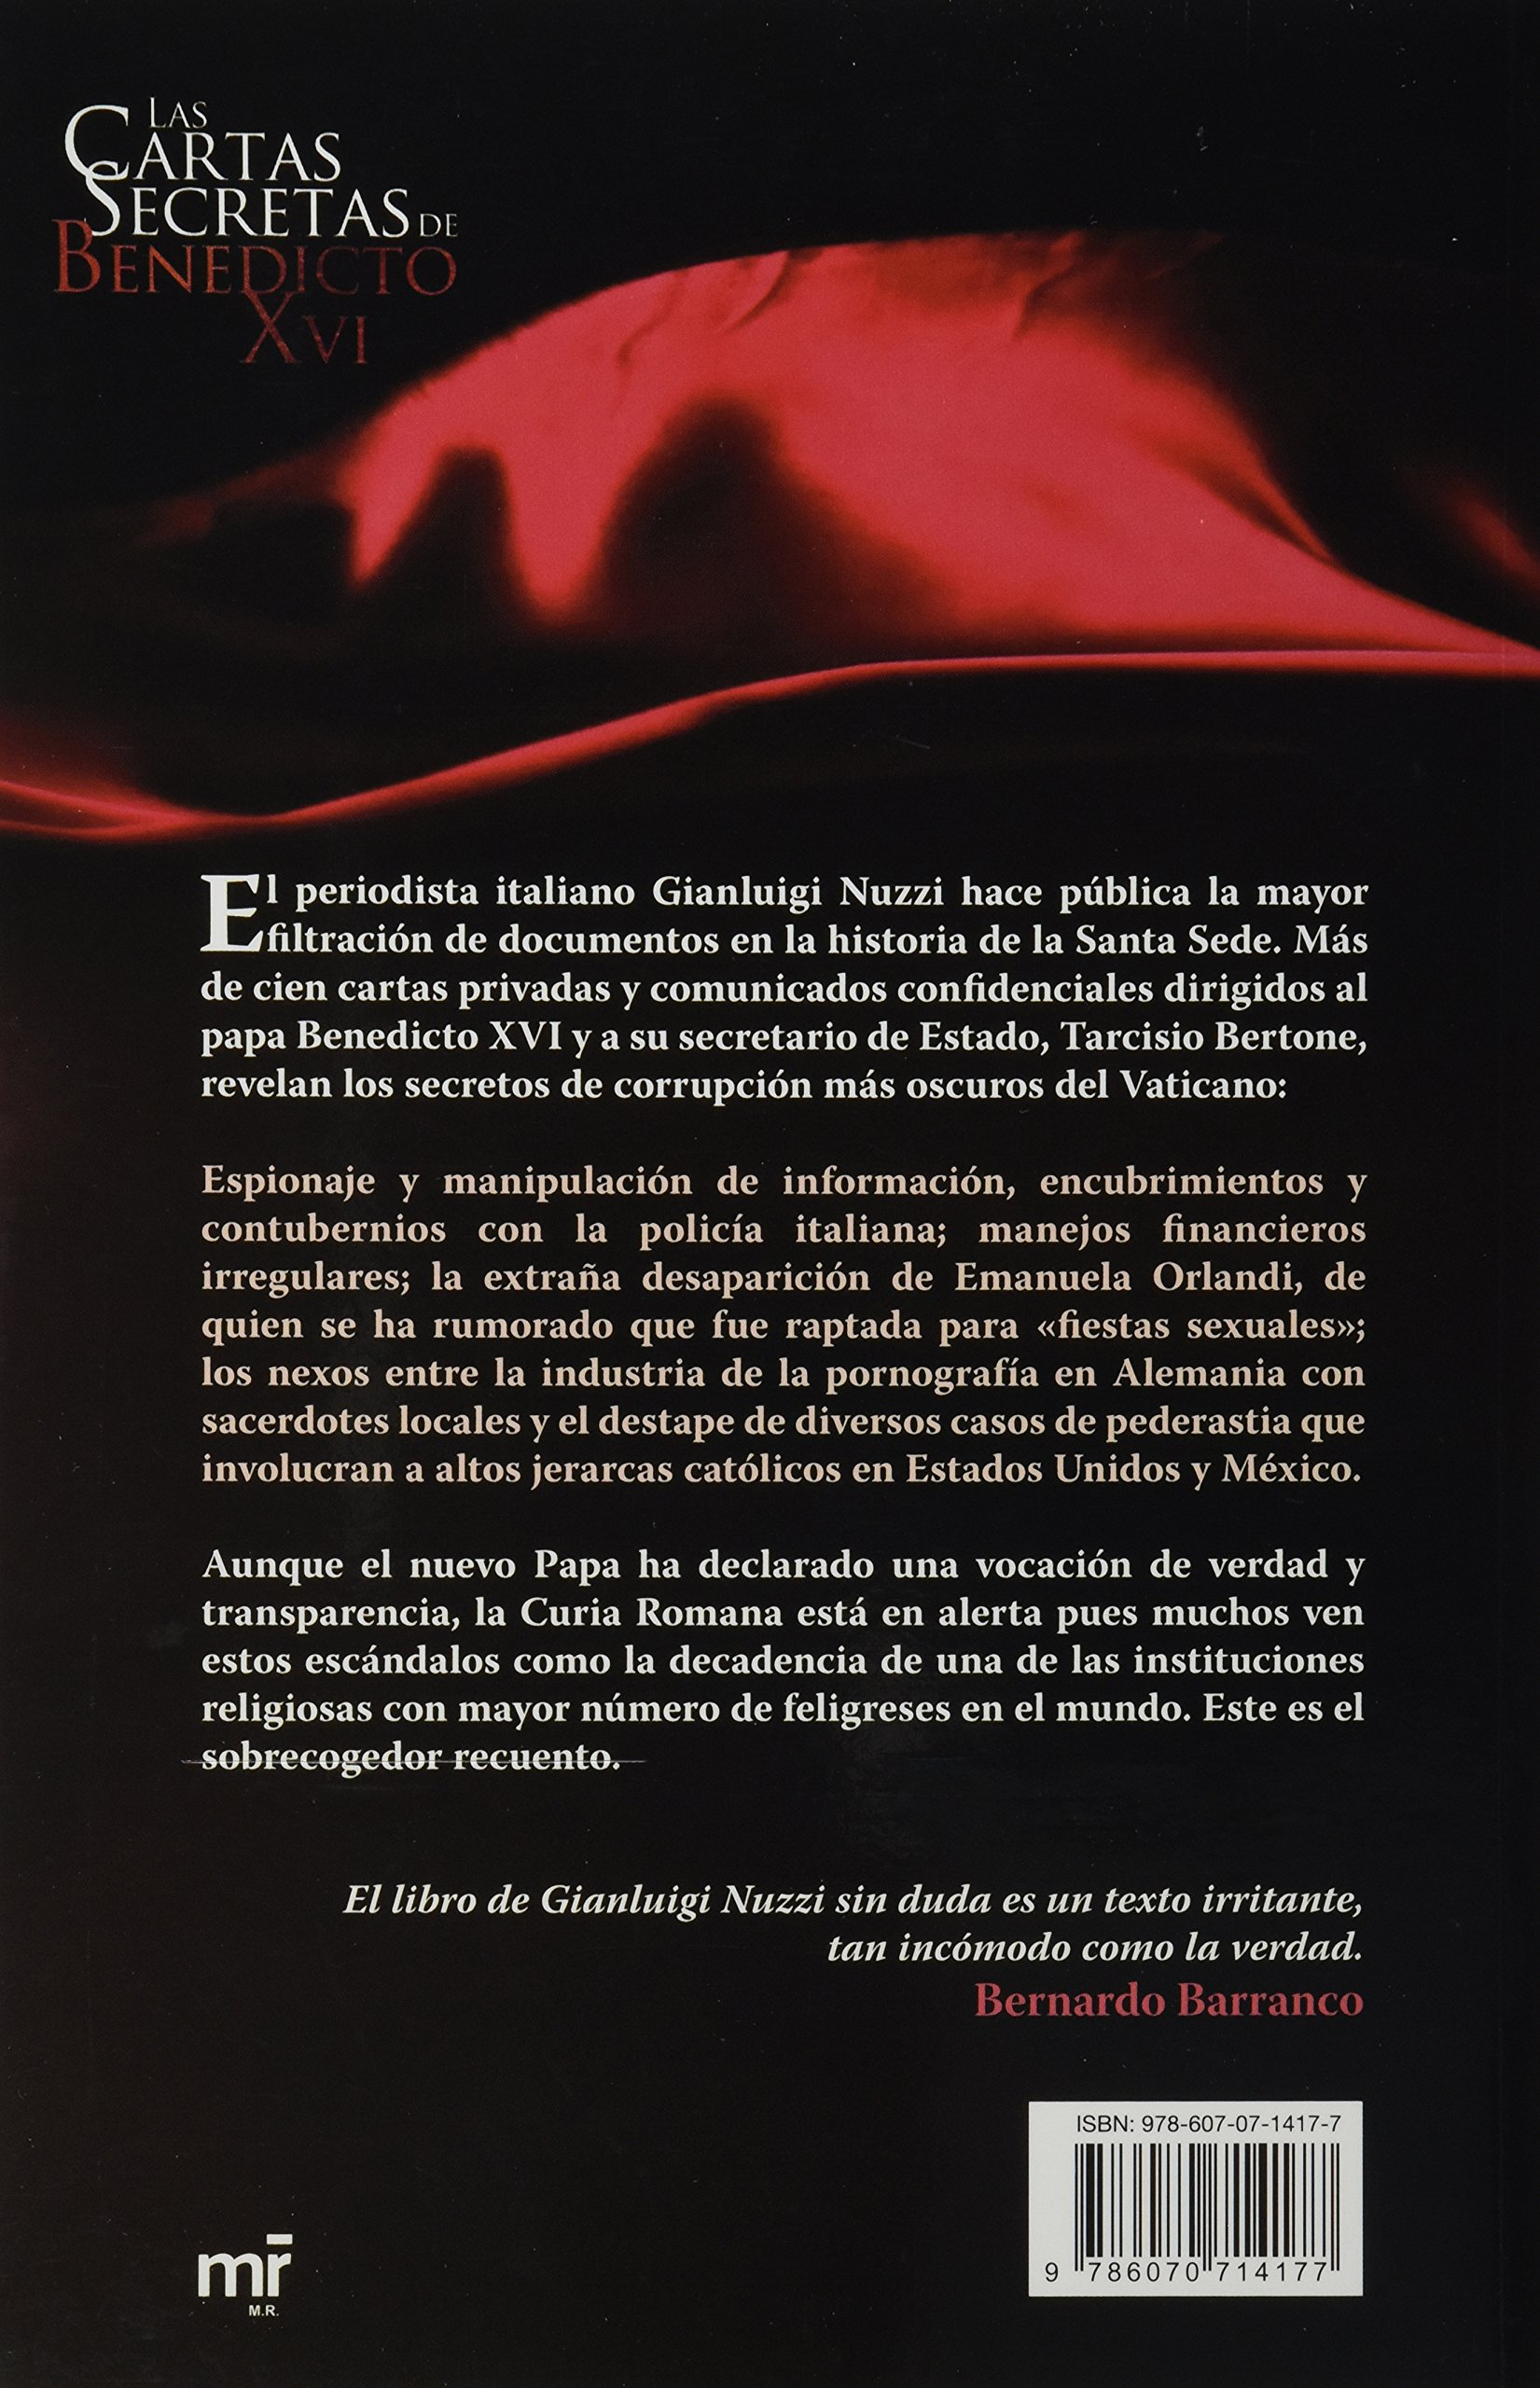 Las cartas secretas de Benedicto XVI (Spanish Edition ...